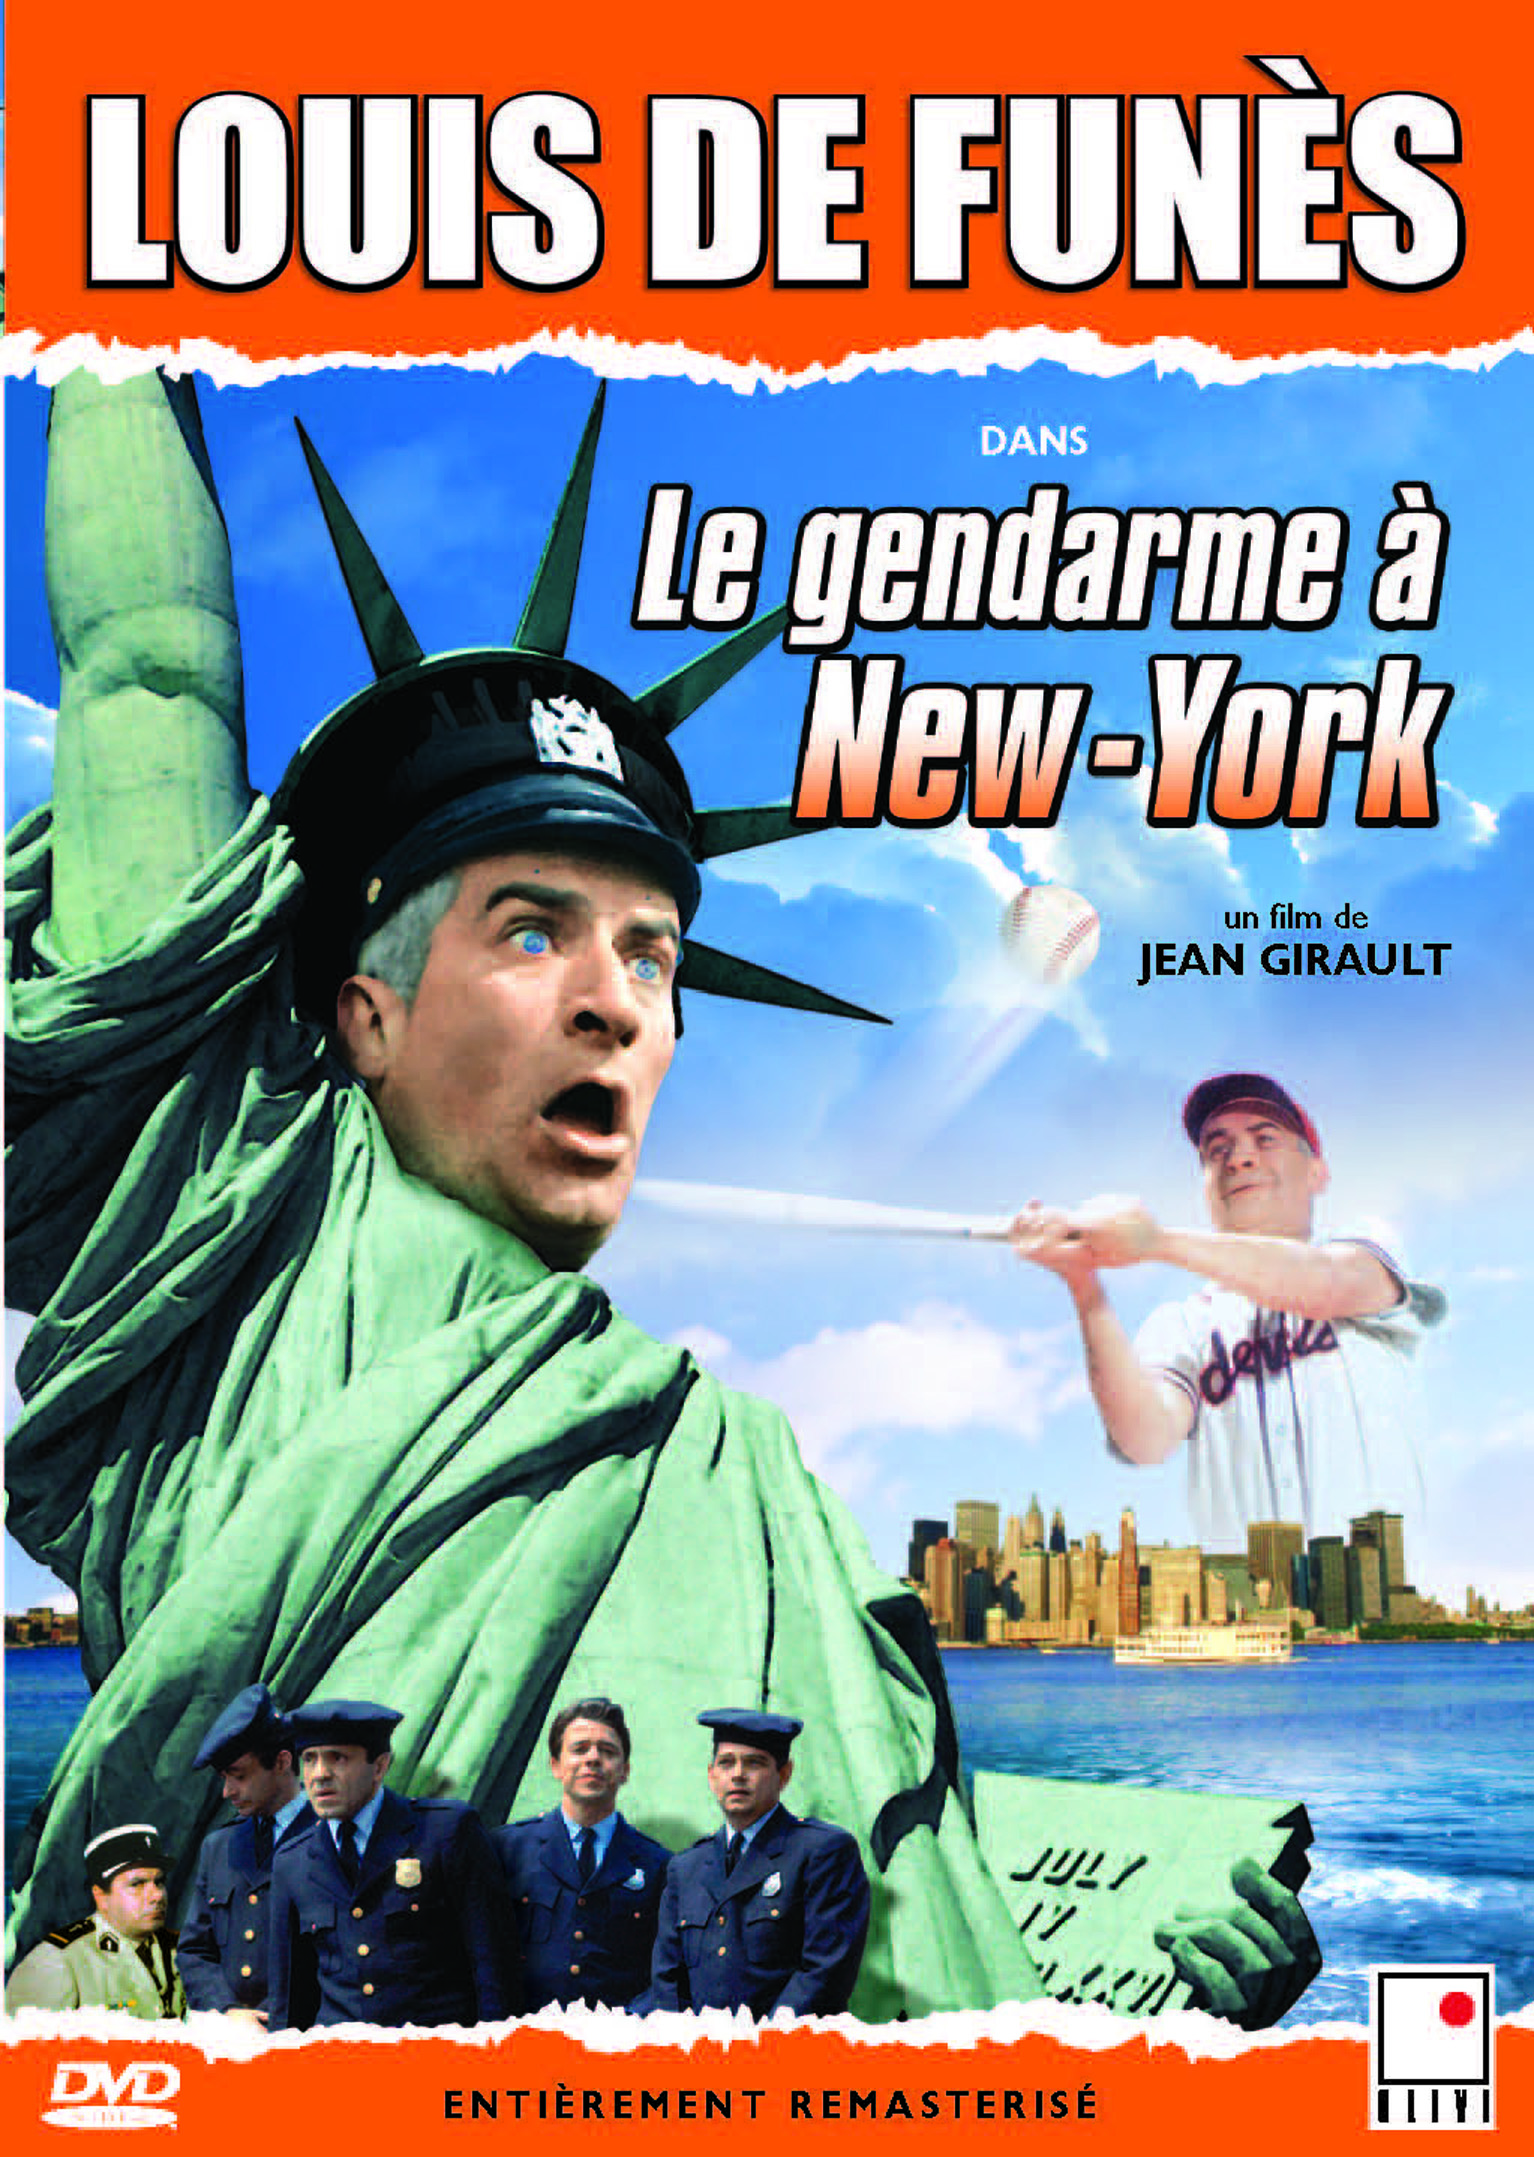 film le gendarme 2 le gendarme new york en streaming complet hd dpstream. Black Bedroom Furniture Sets. Home Design Ideas